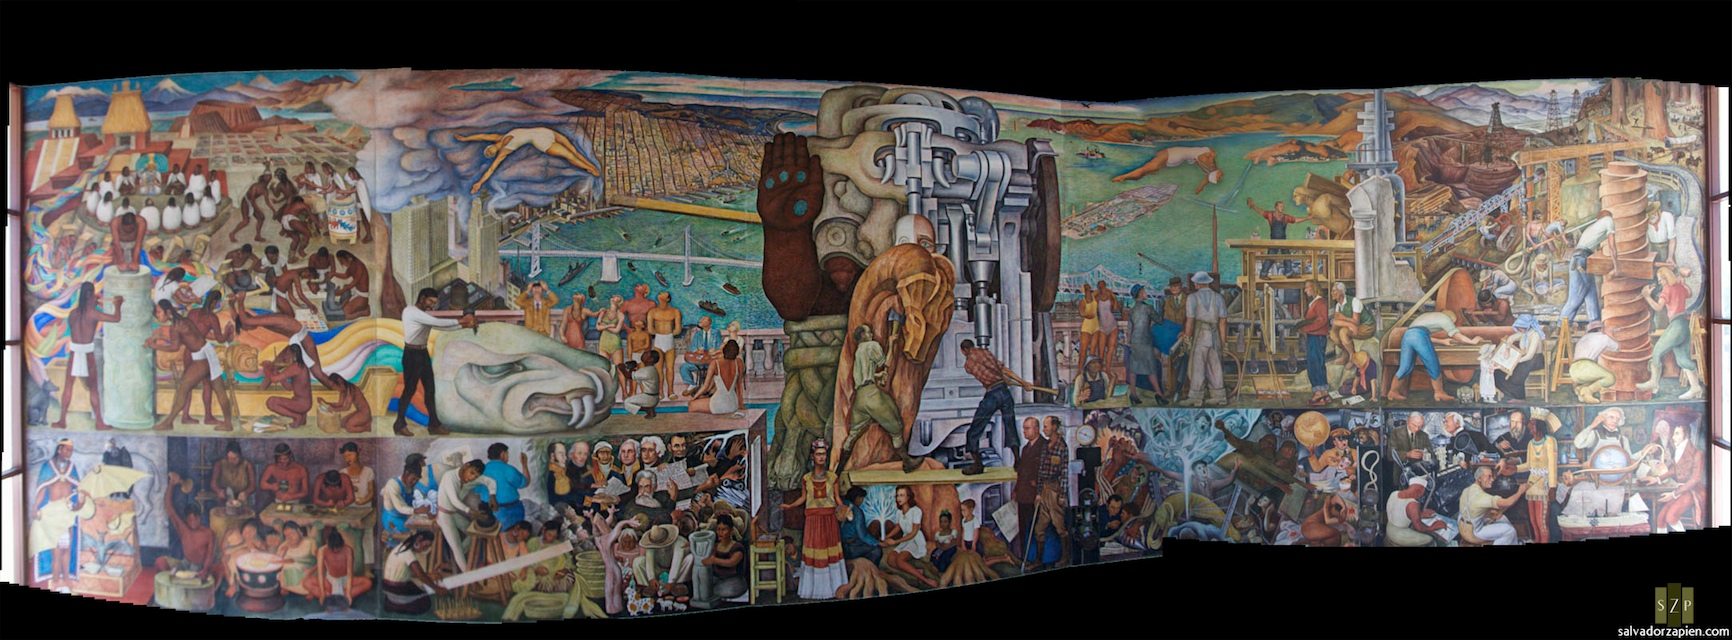 Diego rivera murals in san francisco 28 images a brief for Diego rivera mural in san francisco